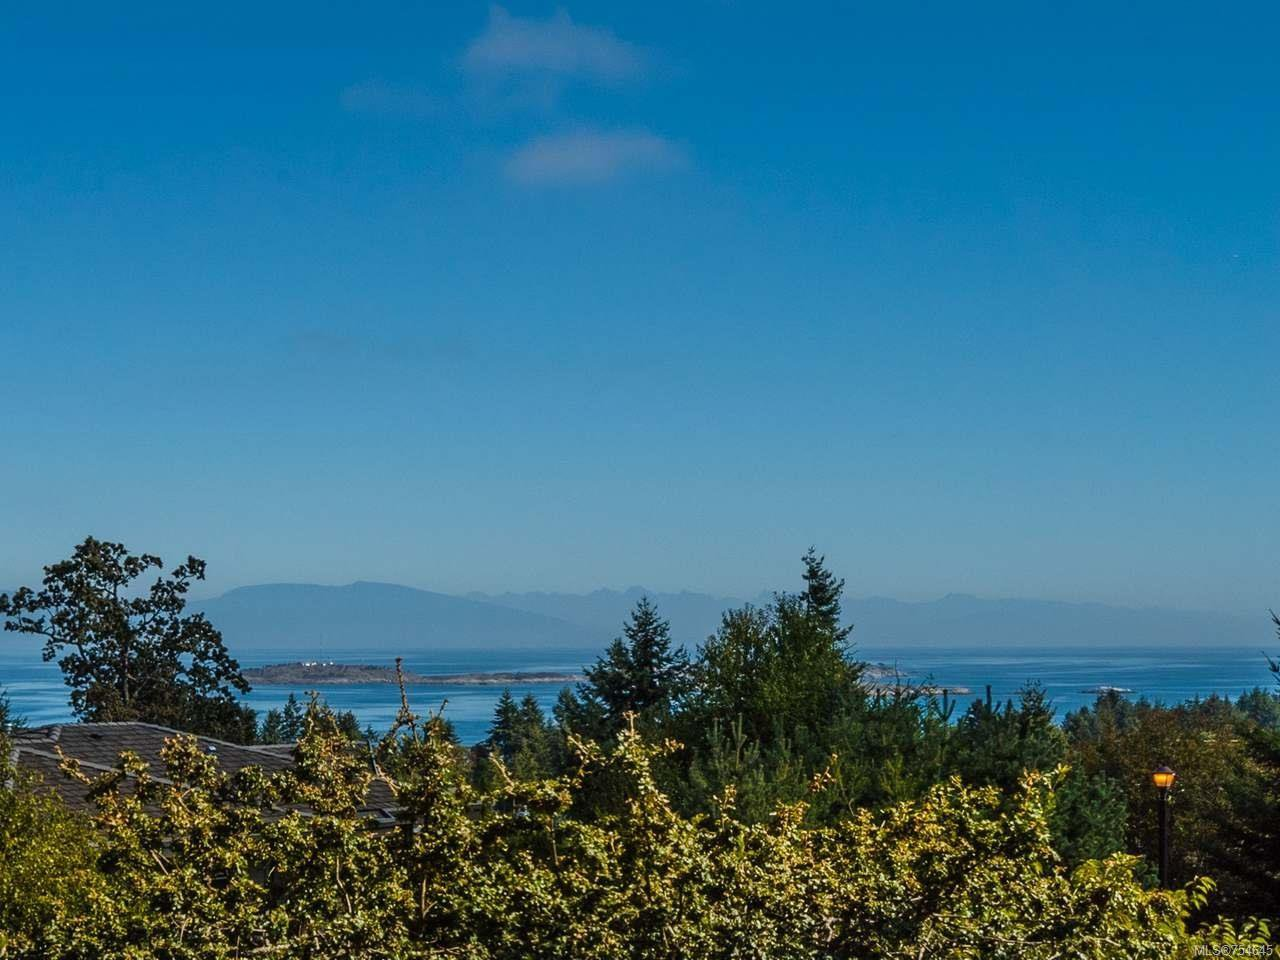 Main Photo: 3478 CARLISLE PLACE in NANOOSE BAY: PQ Fairwinds House for sale (Parksville/Qualicum)  : MLS®# 754645